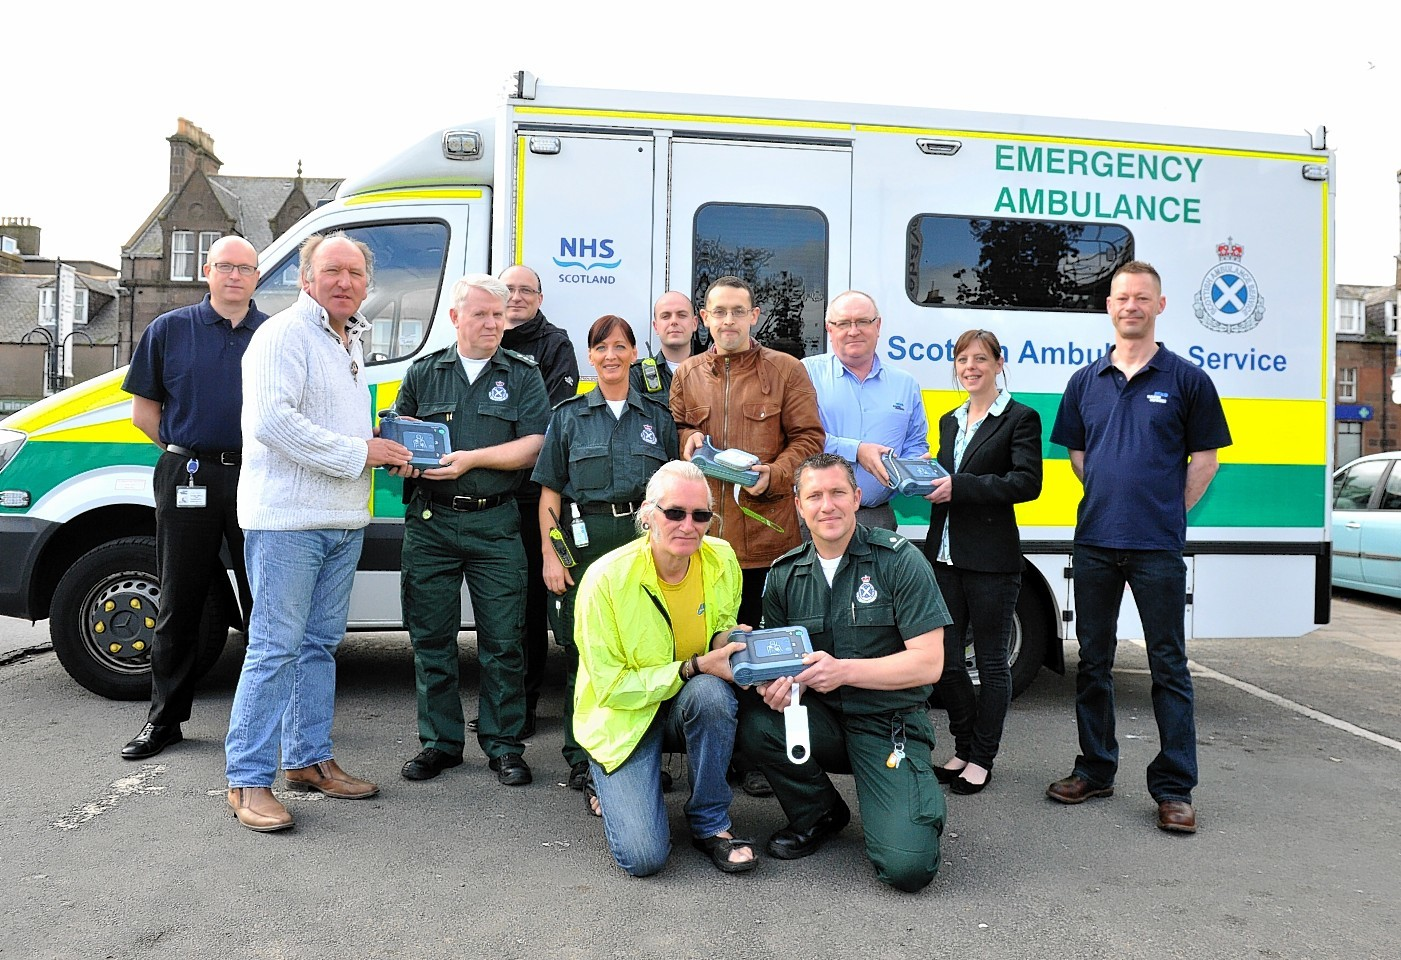 Stonehaven Community Council are receiving four defibrillators from Baker Hughes. Pictured from back left to right are Martin Fisher (baker Hughes),  Community Vice Chair Phil Mills-Bishop, John McCullough (area manager Ambulance service south grampian),Loic Gauliard (baker Hughes), Sylvia Currid (technician),Fraser Wade (Technician), Council member Daniel Veltman, Jon Shaw (baker Hughes), Lynne Anderson (community member and owner of Maggie May's Coffee Shop) and John Trudgill (baker Hughes), Front left to right are David Harper (community council) and Nick Veitch